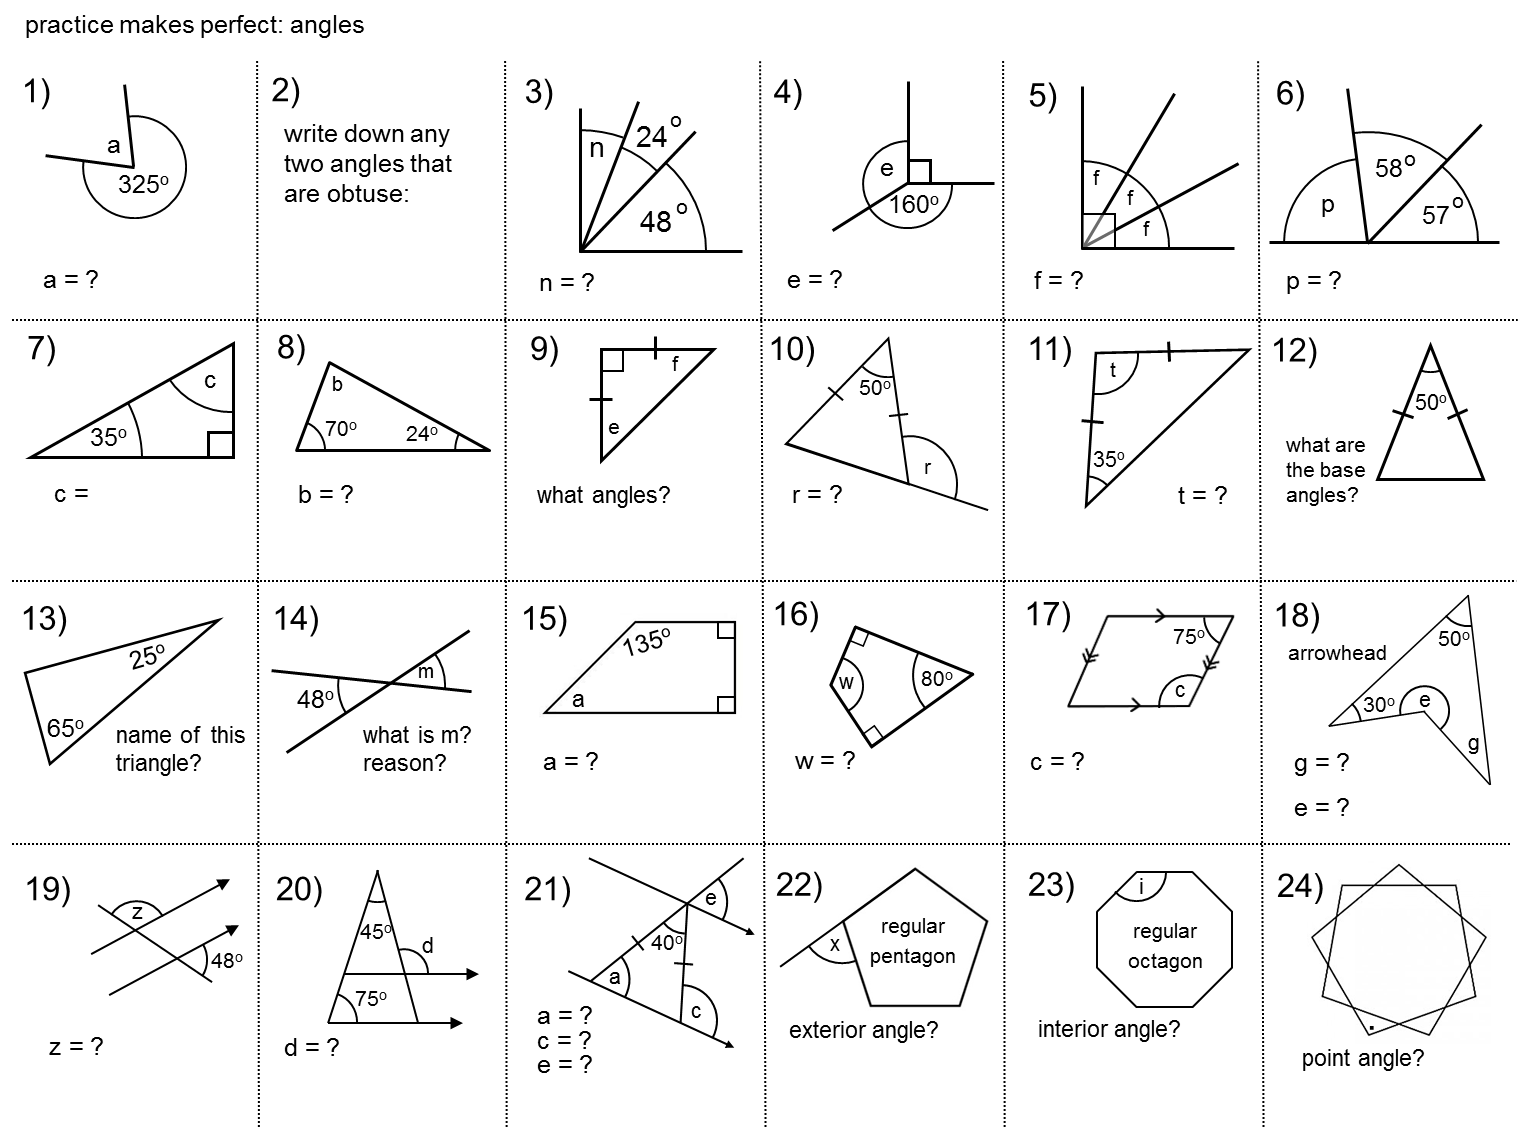 edexcel mathematics coursework Gcse maths resources for the edexcel gcse 9-1 maths specification for first teaching from september 2015 - see samples and order a free evaluation pack.